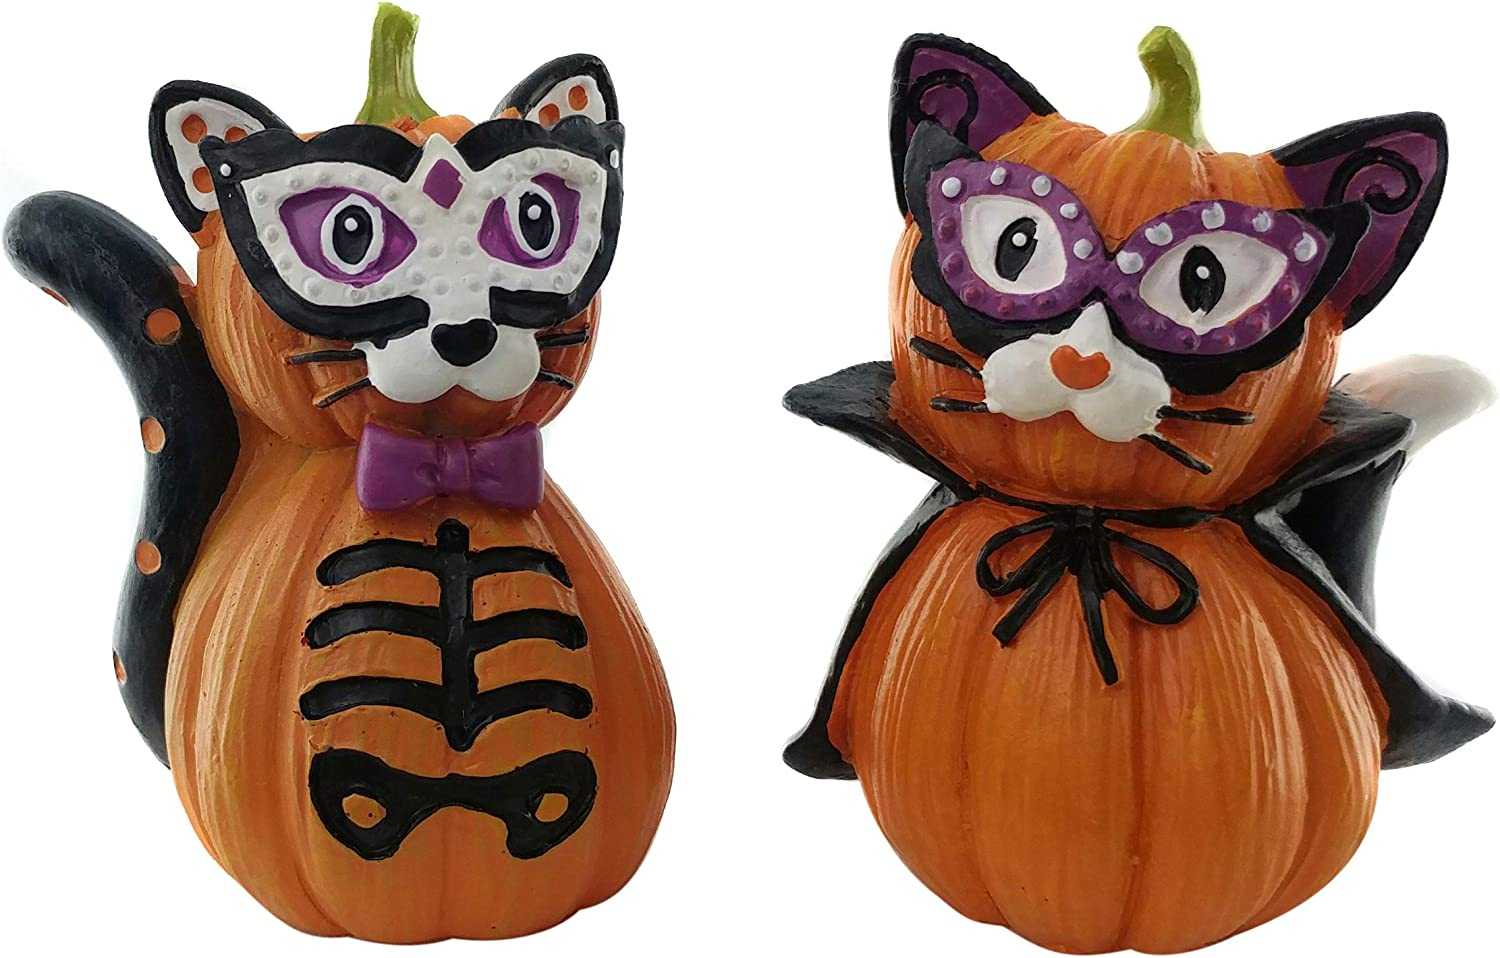 Cat Skeleton and Vampire Party Pumpkin Halloween Cat Decorations | Collectible Cat Pumpkin Shelf Decorations | (2 Pack) for Kitchen, Home and Office Décor